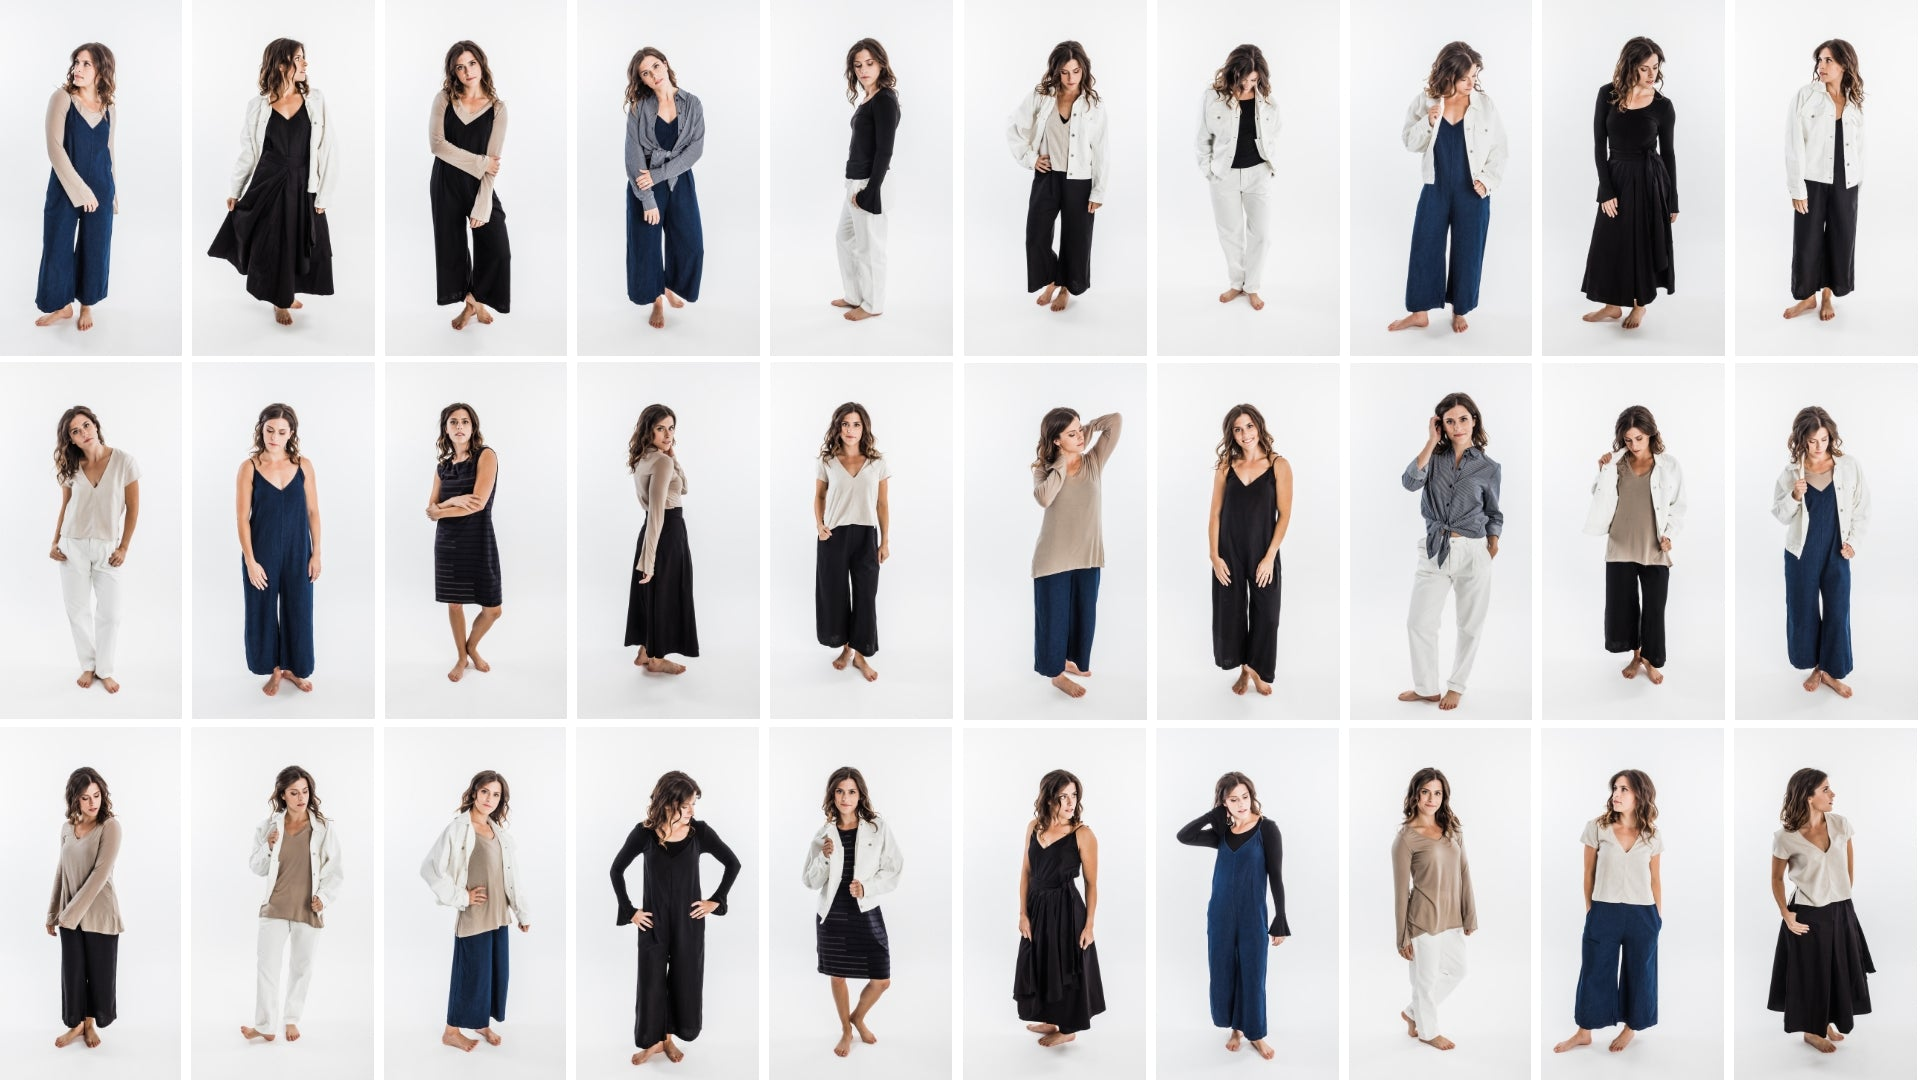 shop sustainable clothing pieces from our pre-made Modern Capsule wardrobe